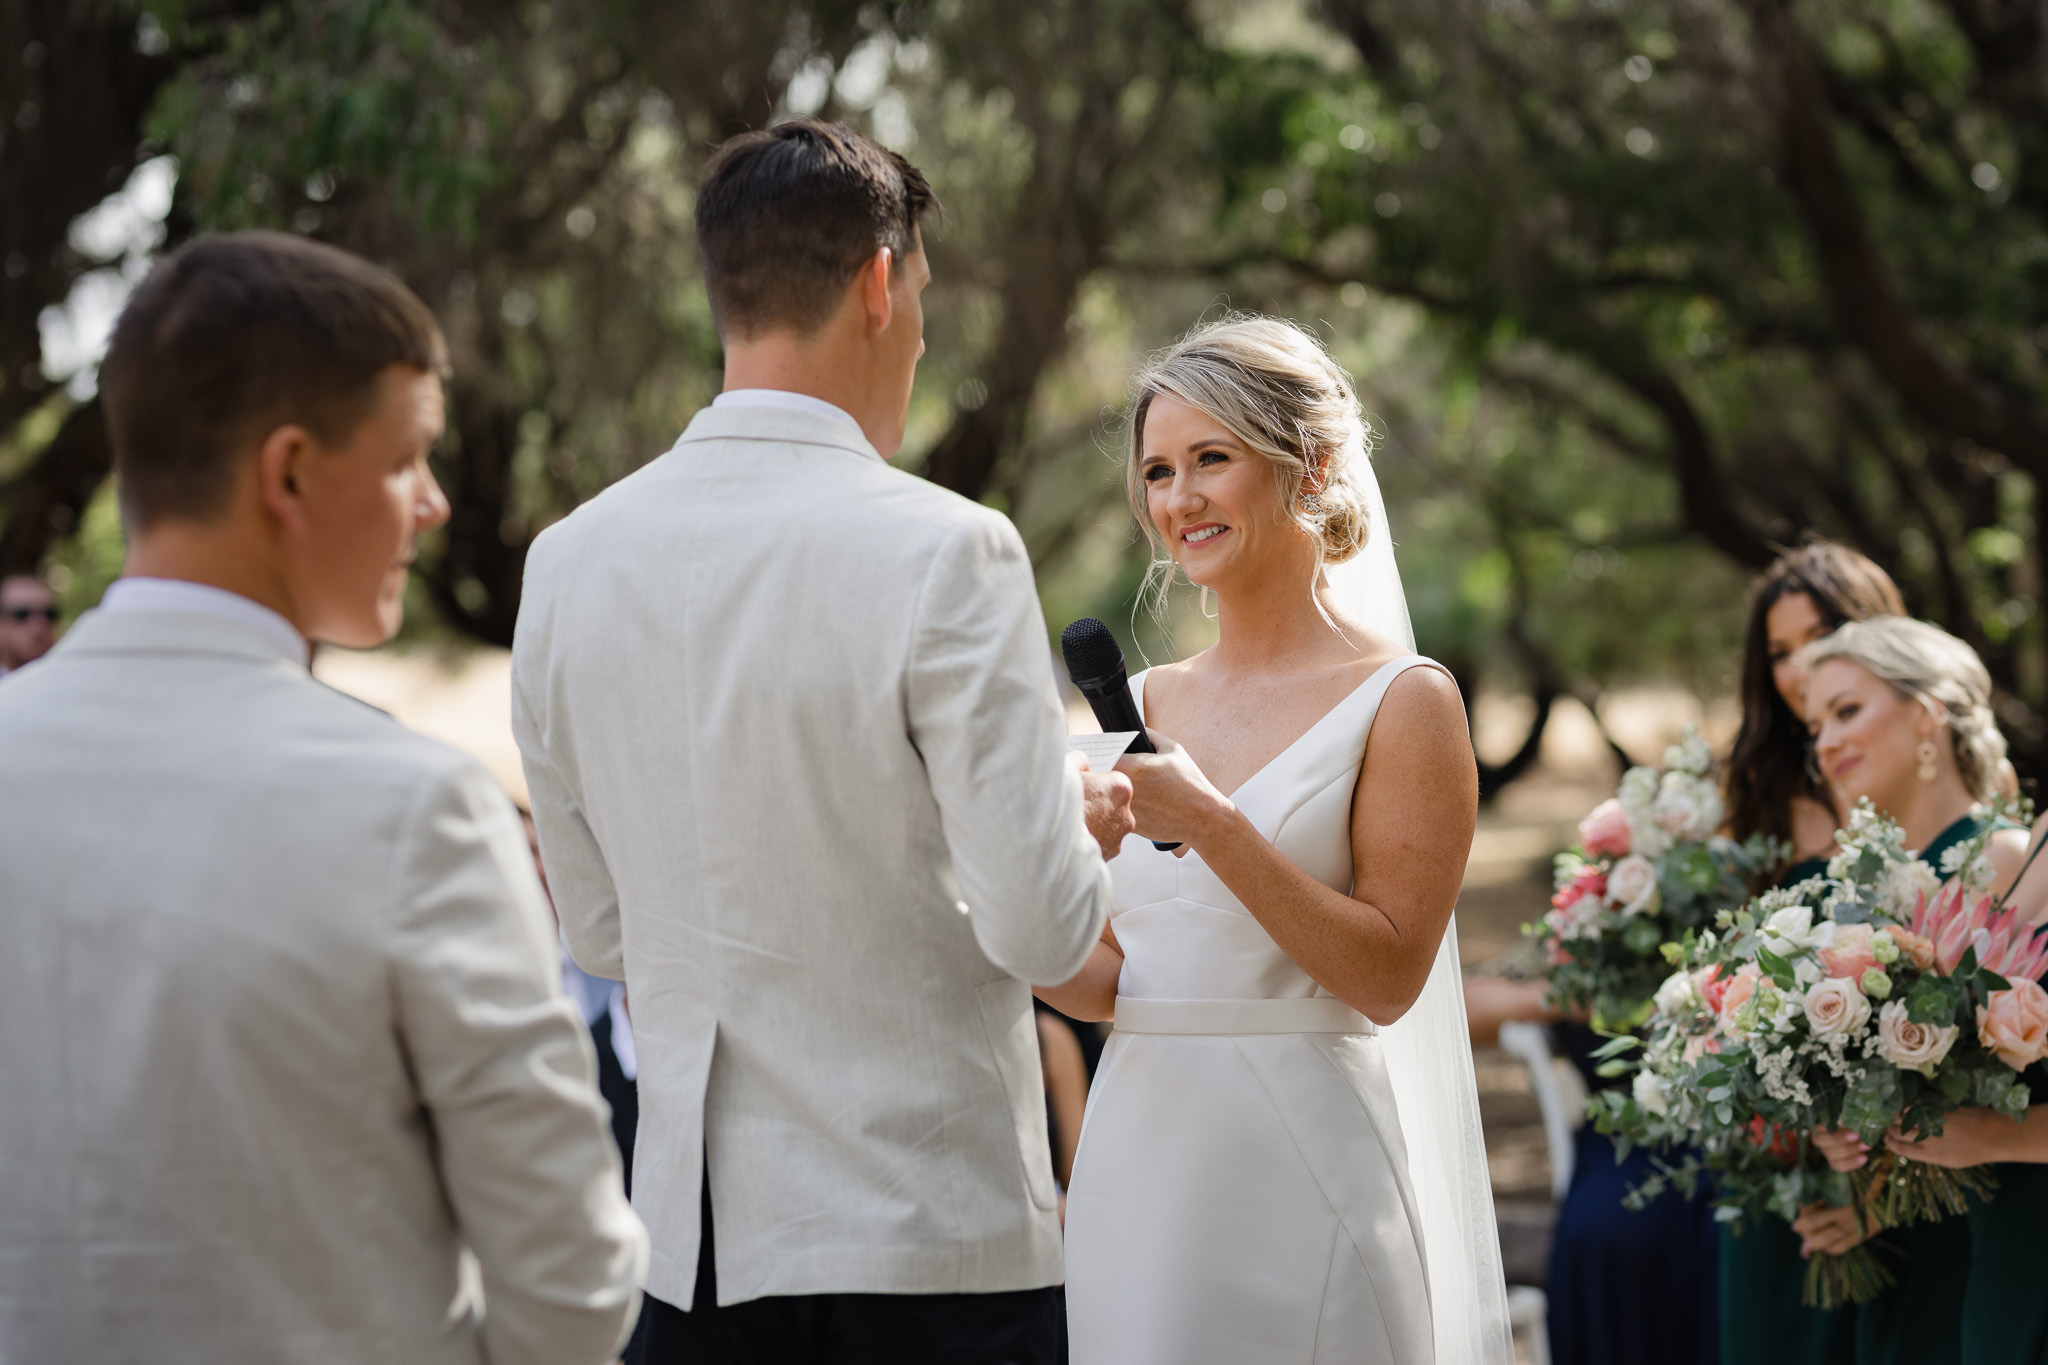 Bride holding microphone towards groom at ceremony while he delivers personalised wedding vows